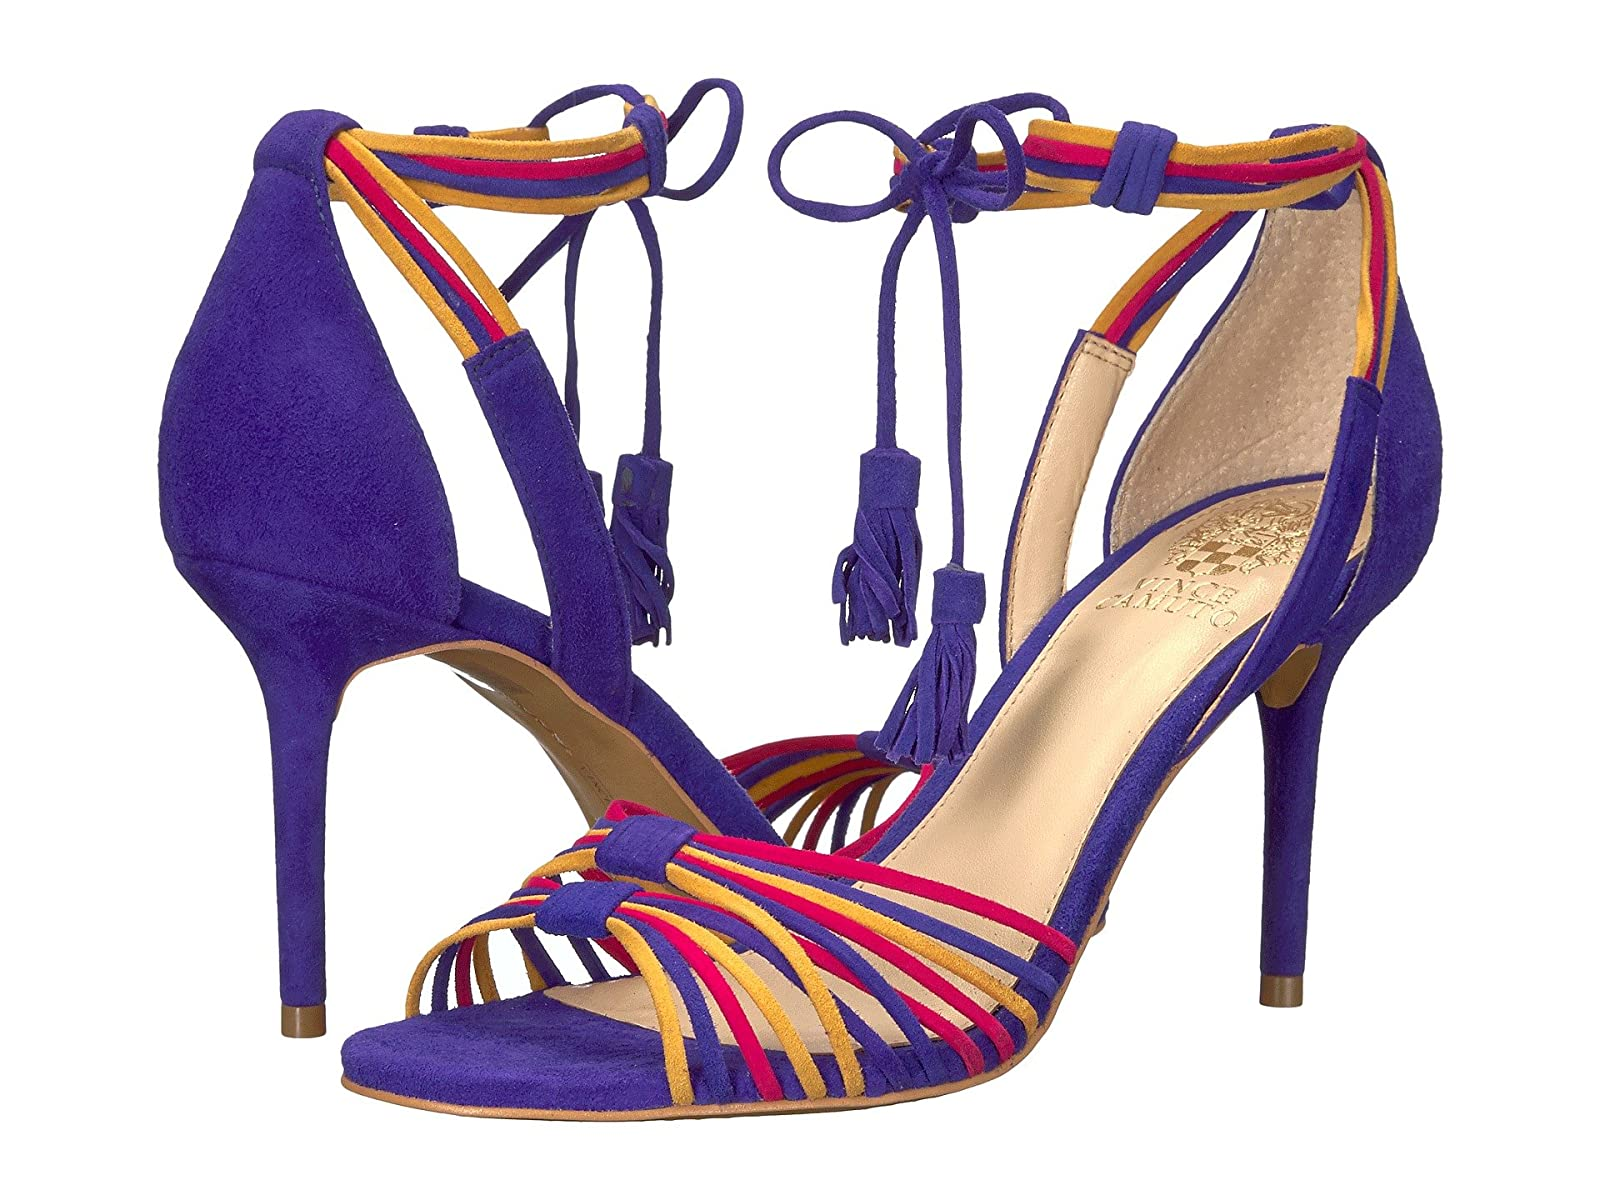 Vince Camuto StellimaCheap and distinctive eye-catching shoes